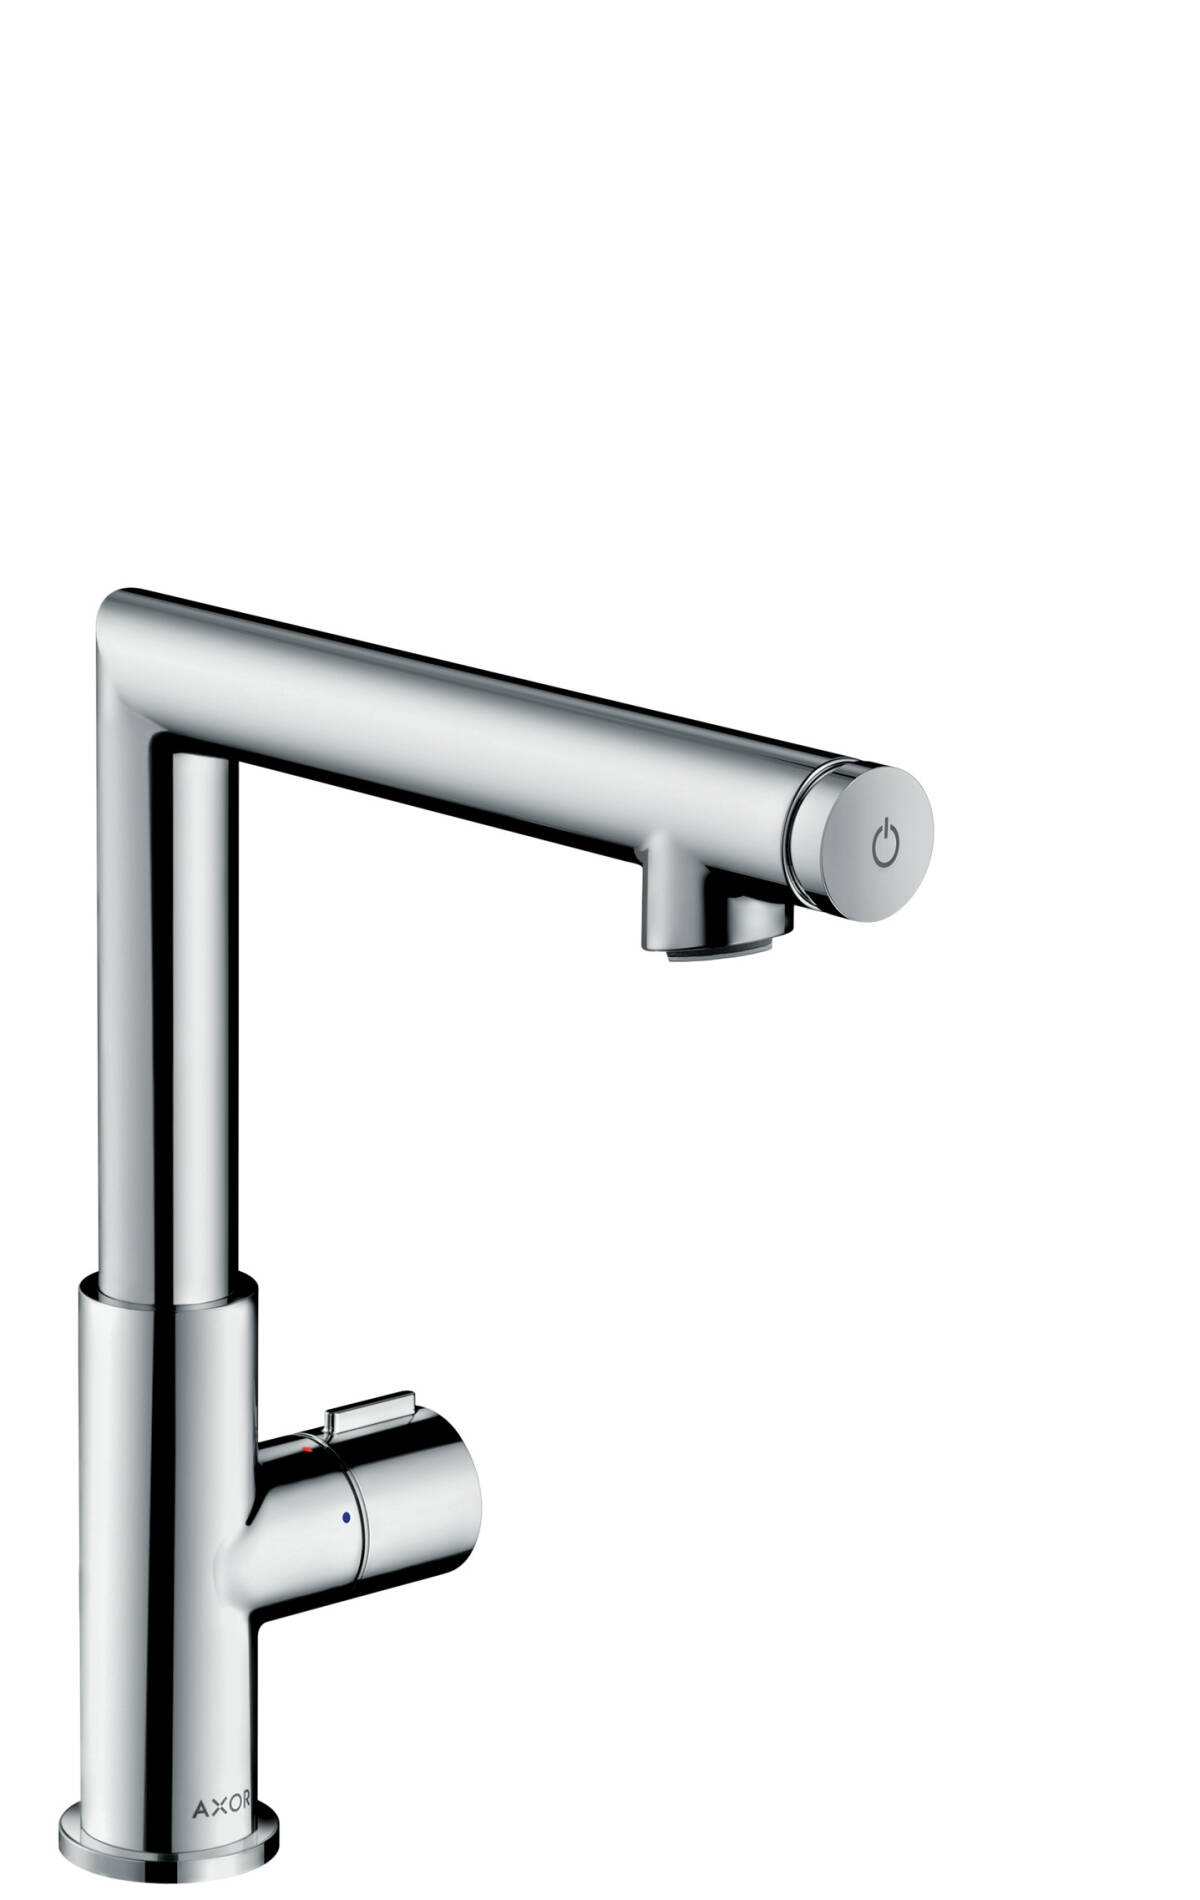 Basin mixer Select 220 with pop-up waste set, Brushed Brass, 45016950